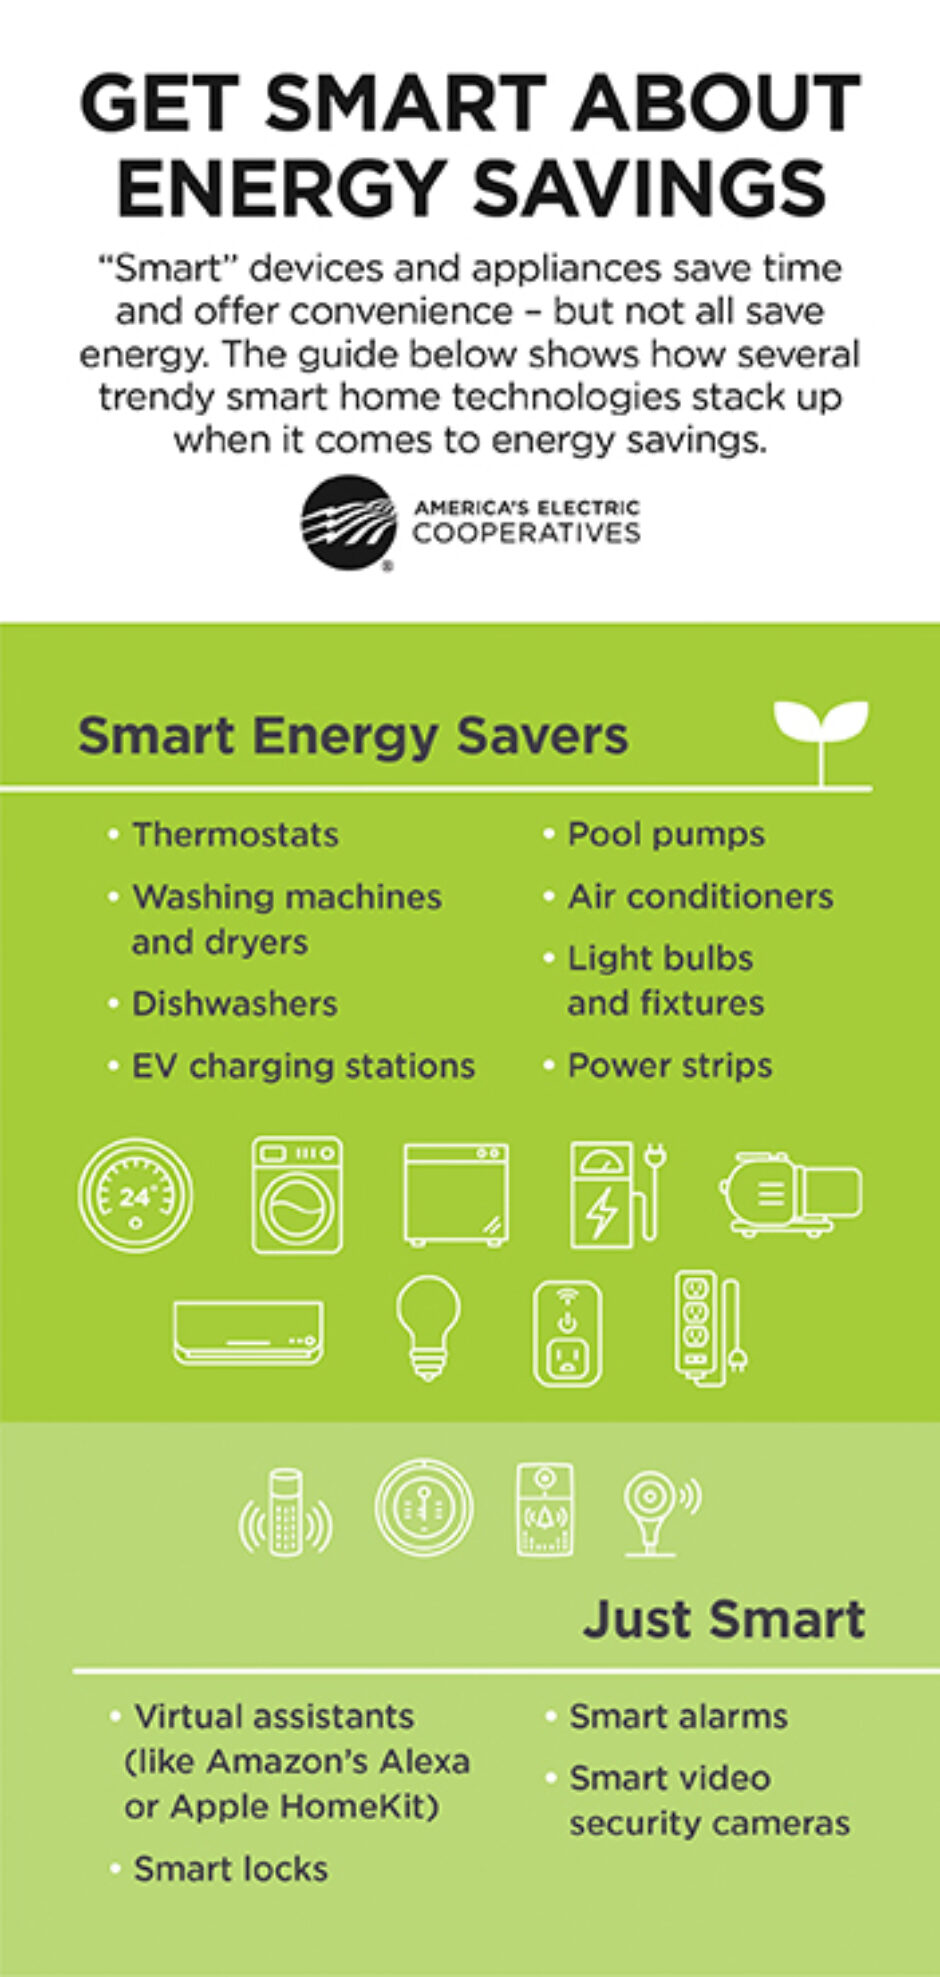 Get Smart About Energy Savings